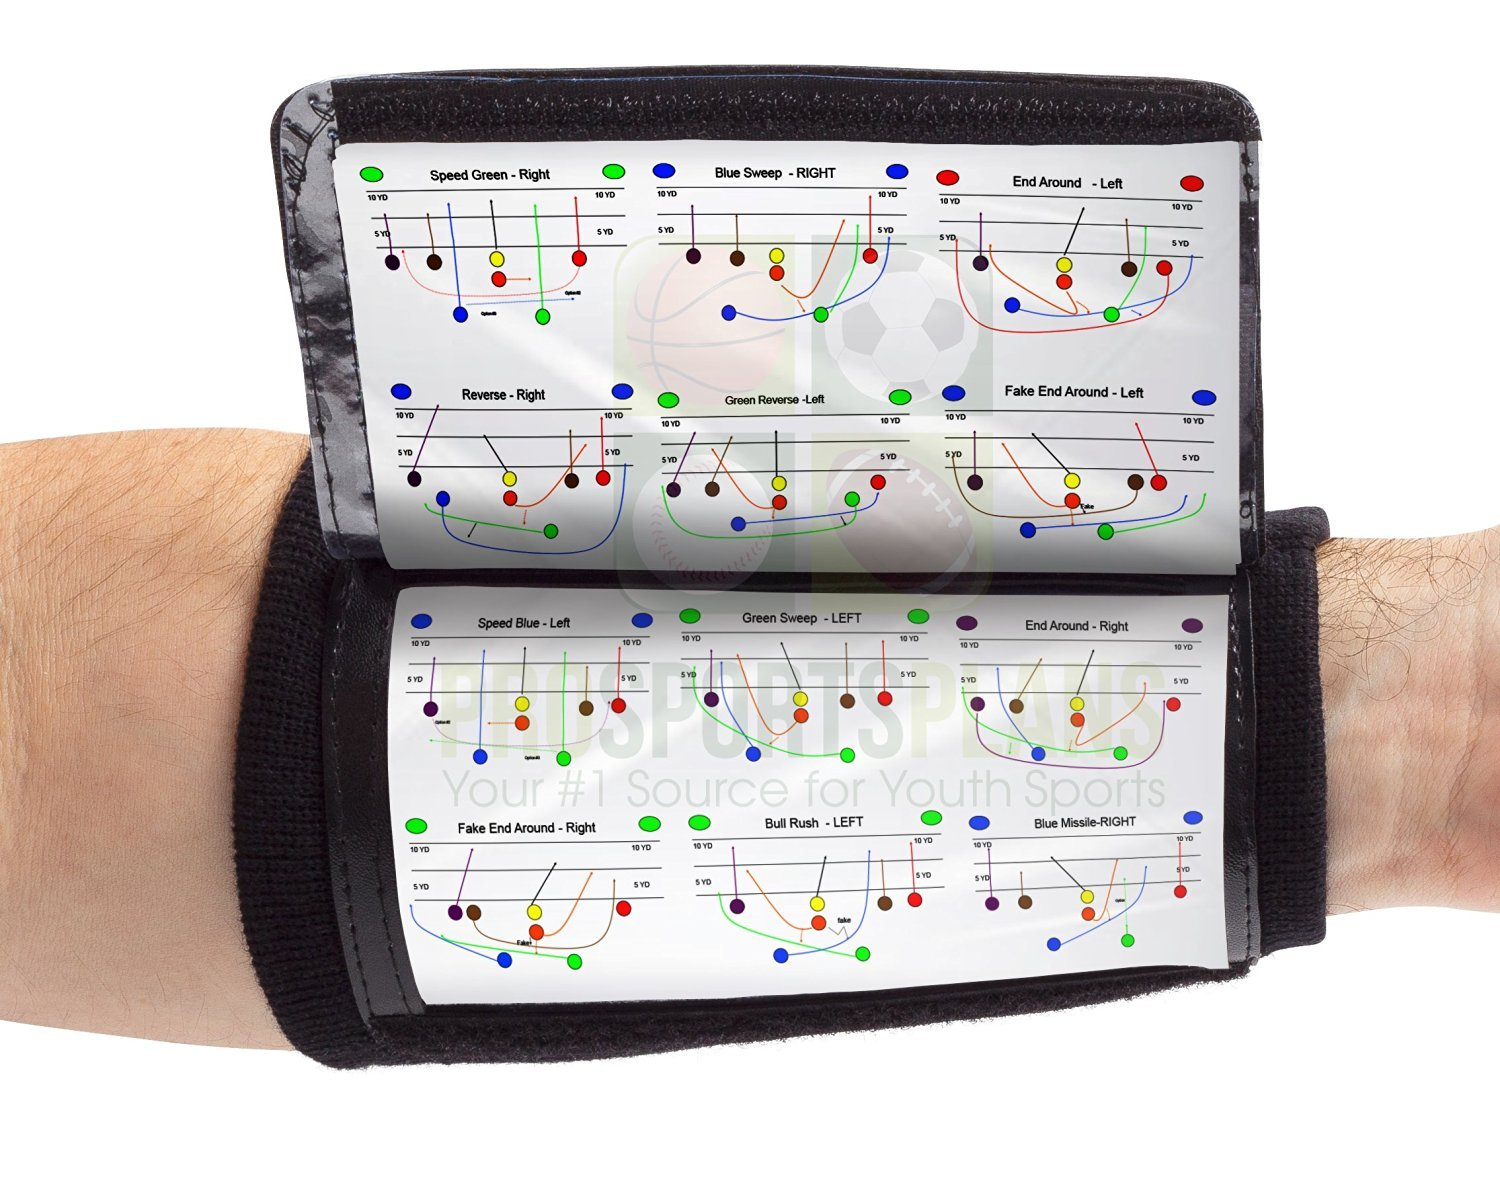 pretty qb wristband template images  play call armbands